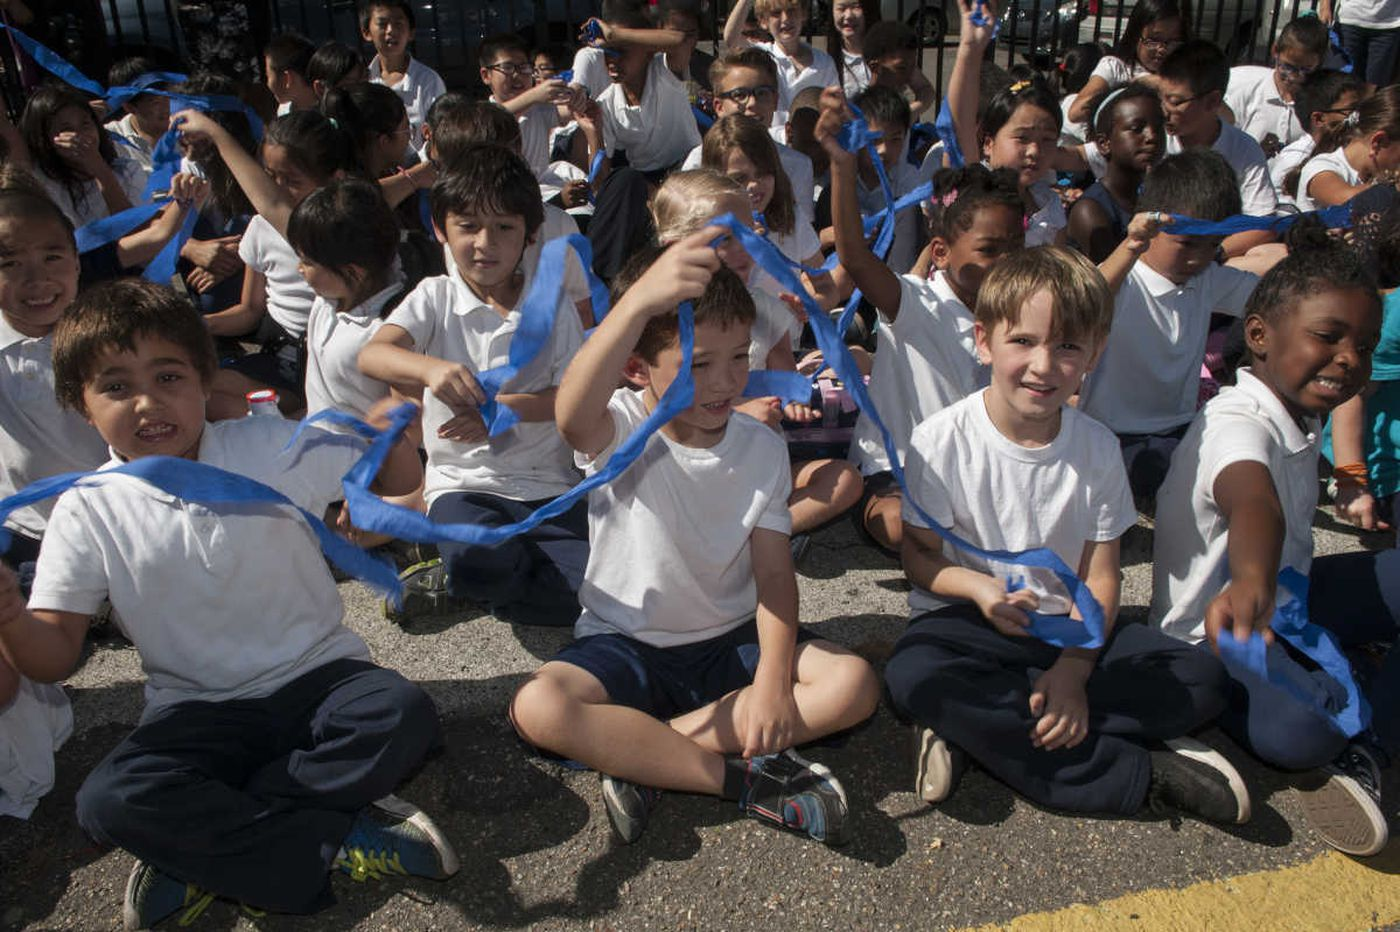 9 local schools win coveted National Blue Ribbon honor